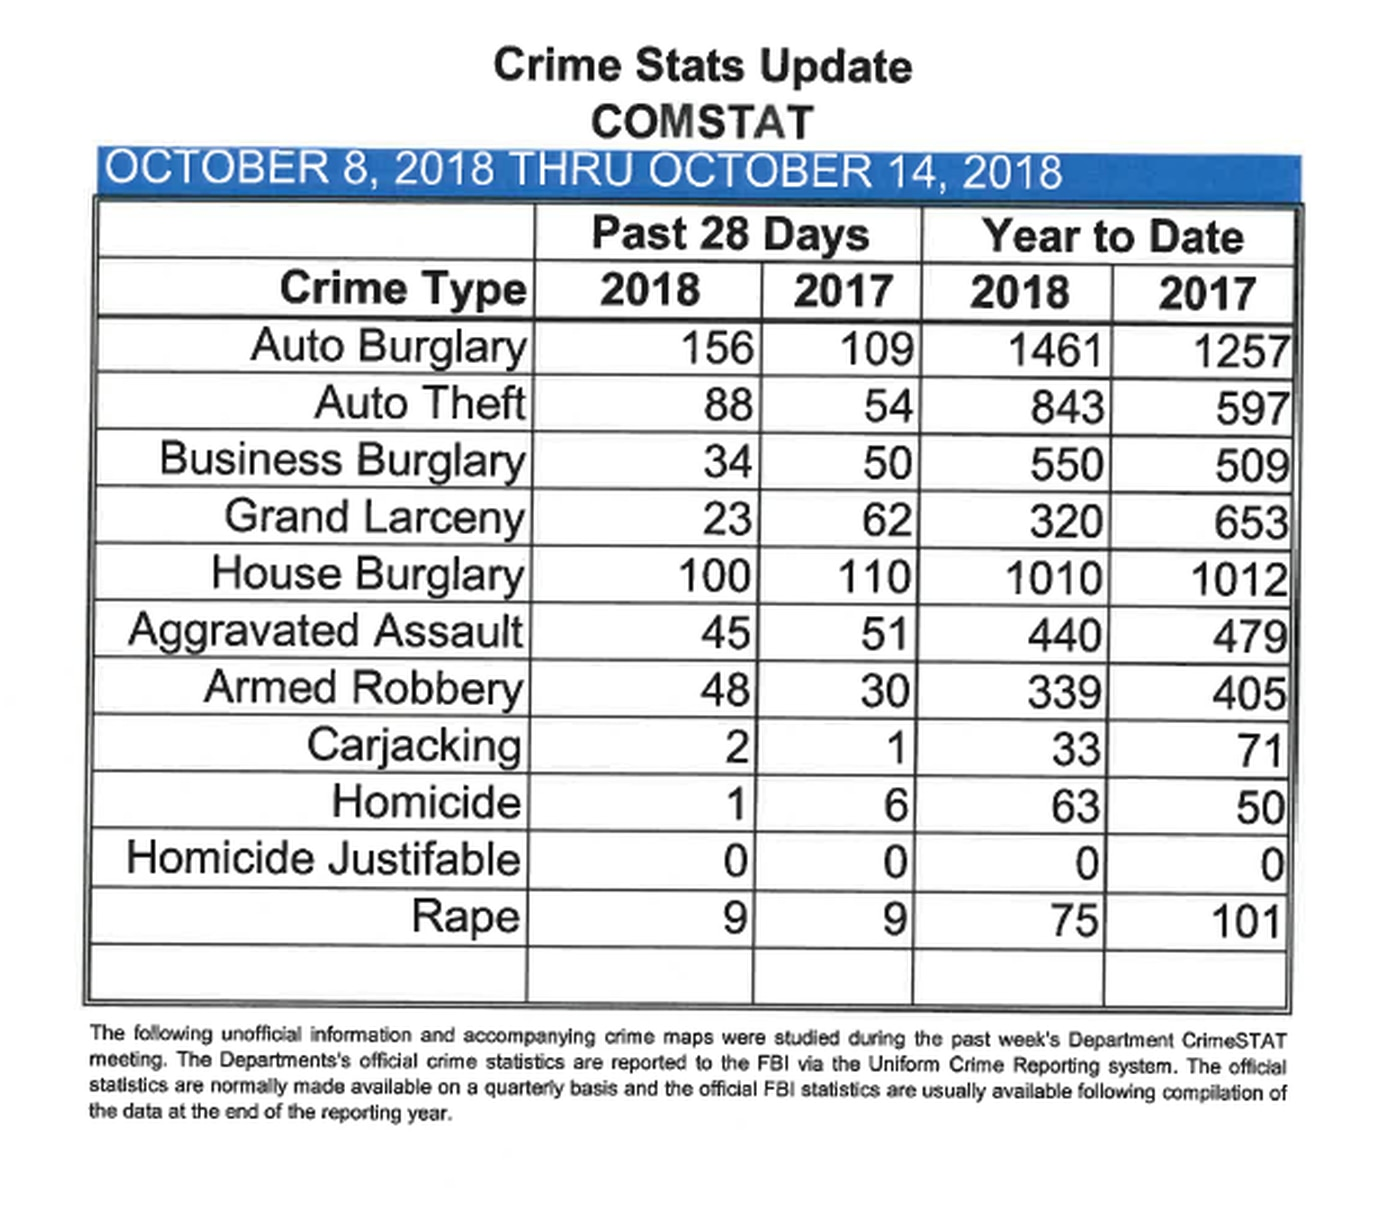 After two-month delay, JPD begins releasing monthly crime statistics